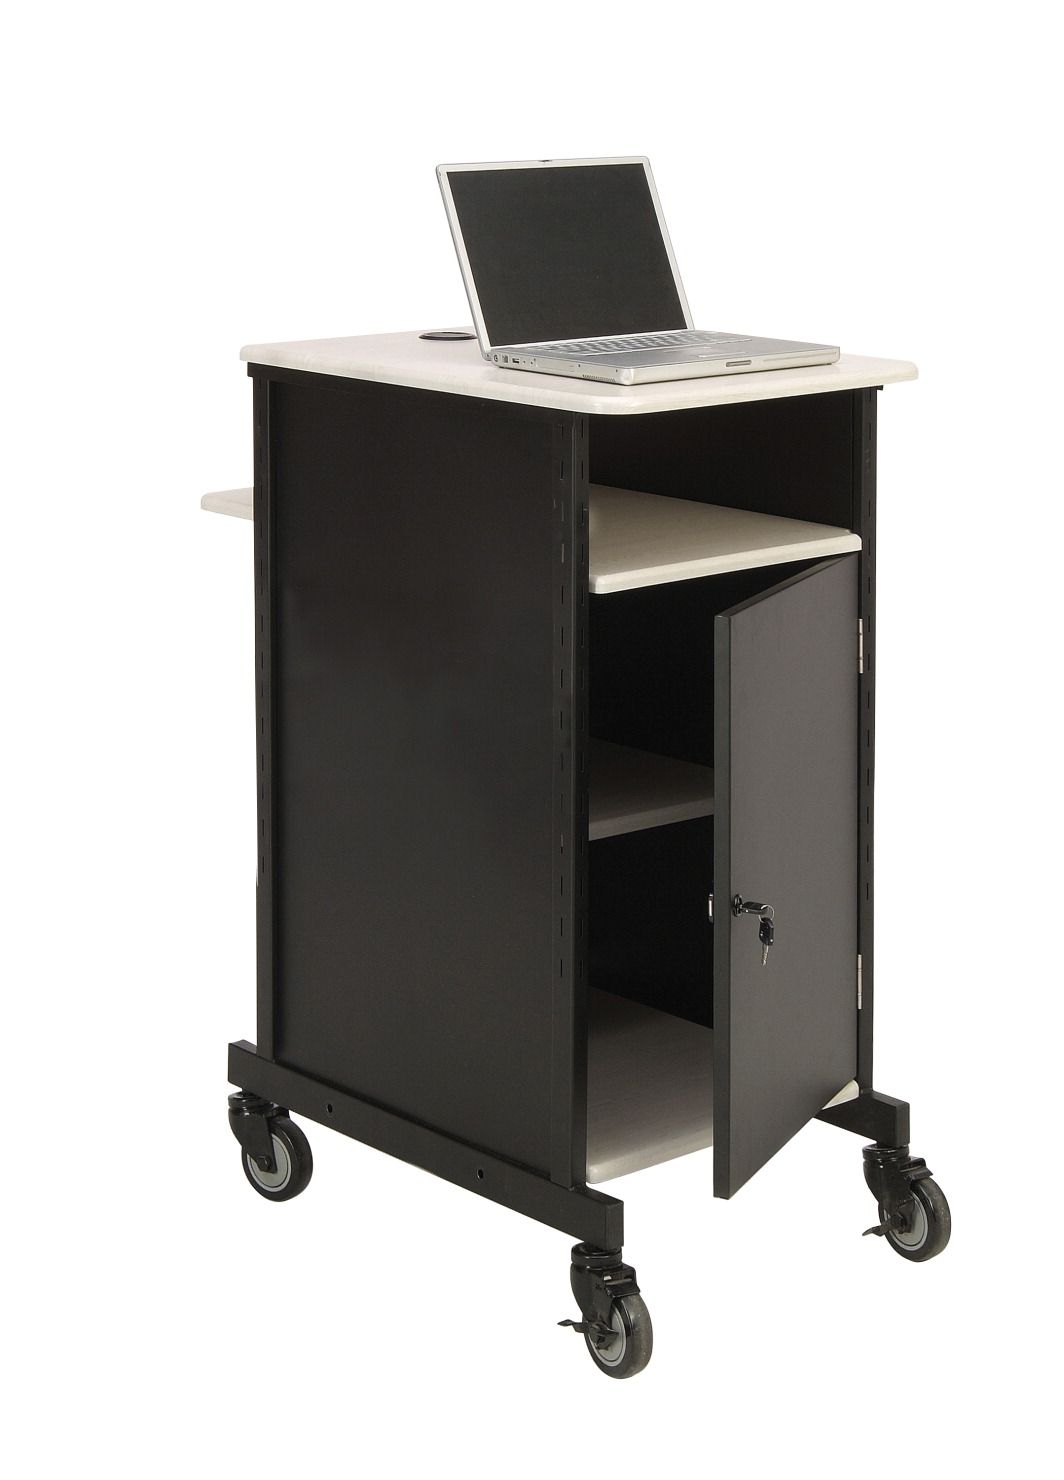 Oklahoma Sound Jumpo Presentation Cart, Steel Frame, Black, Ivory Woodgrain